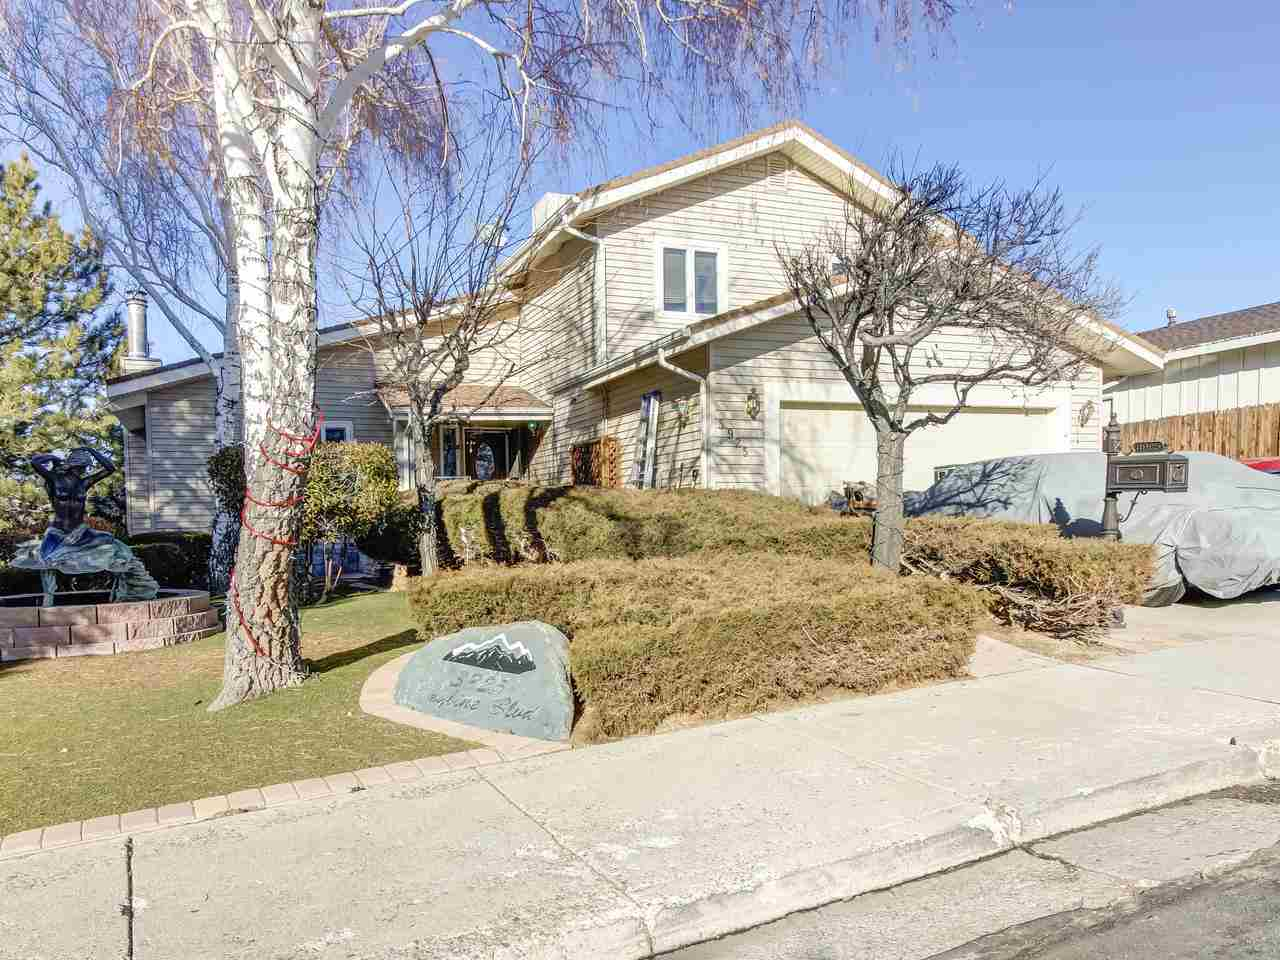 Single Family Home for Active at 3925 Skyline Blvd 3925 Skyline Blvd Reno, Nevada 89509 United States